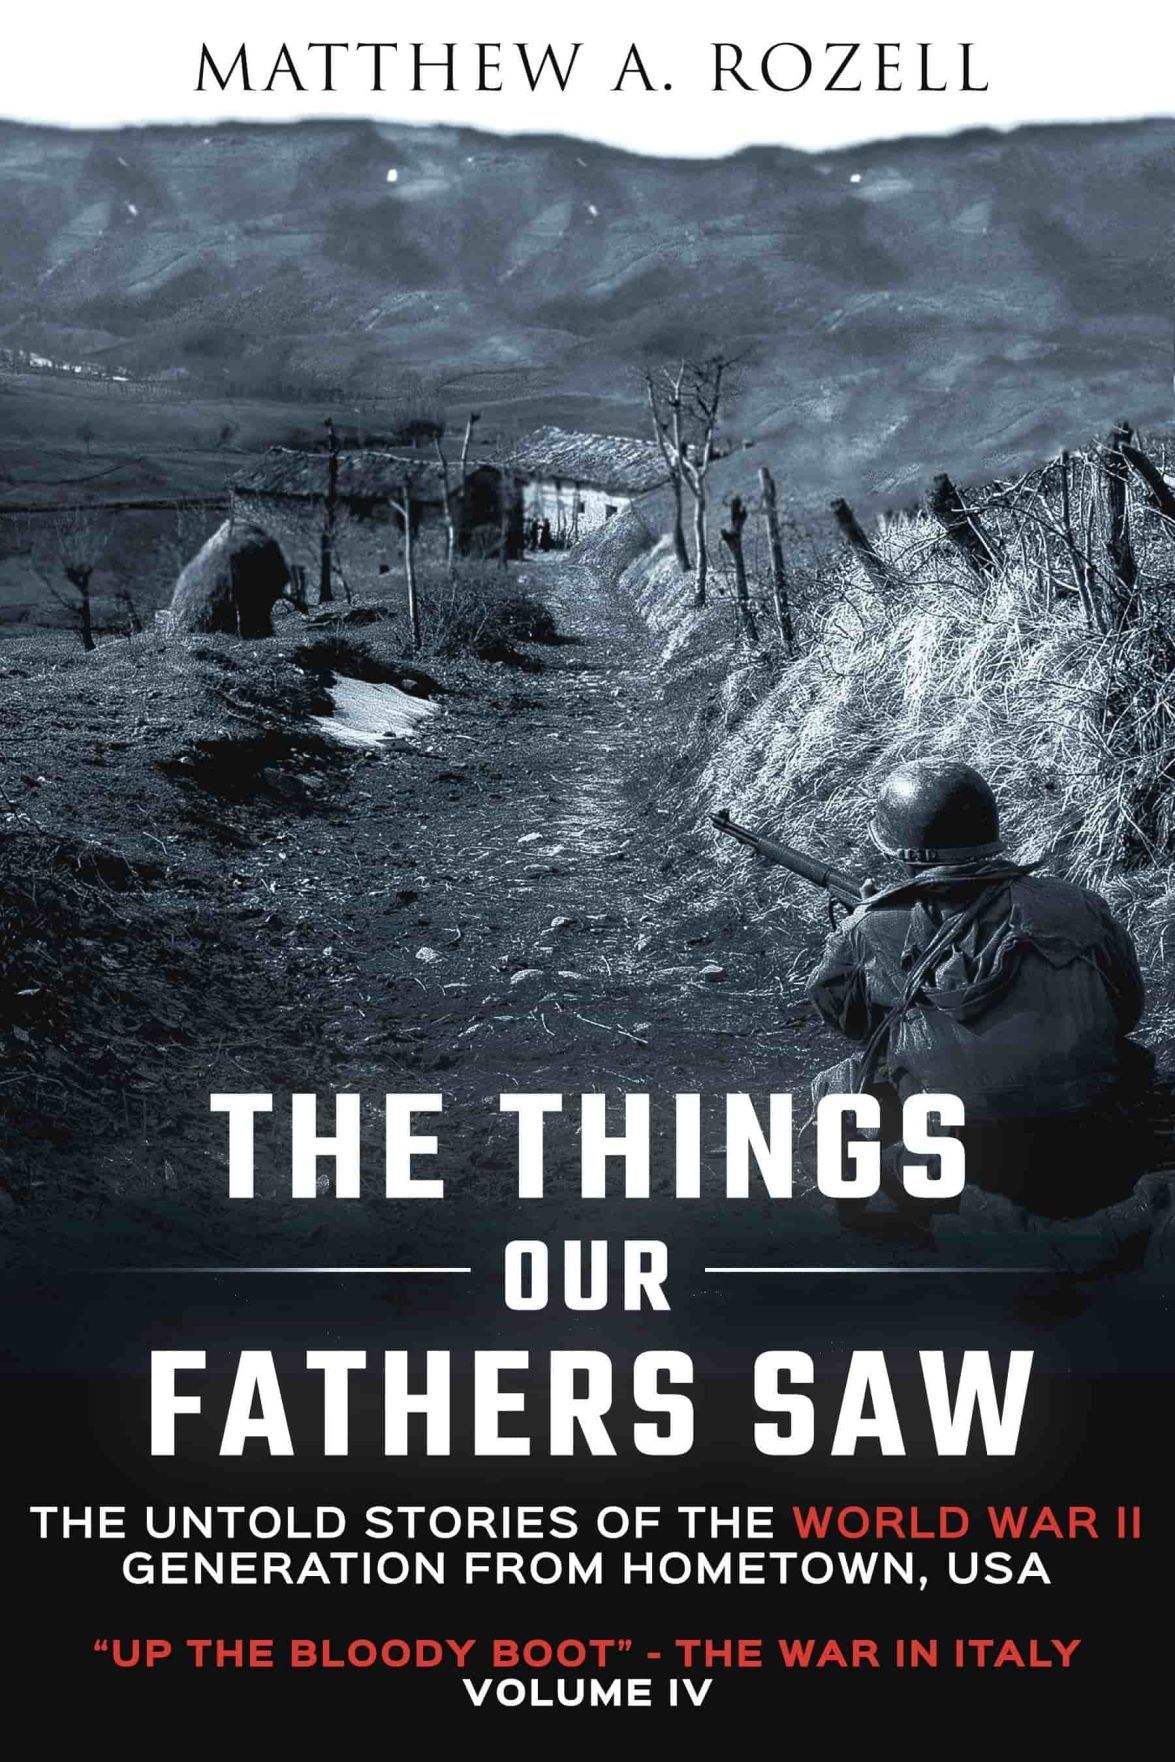 'The Things Our Fathers Saw'